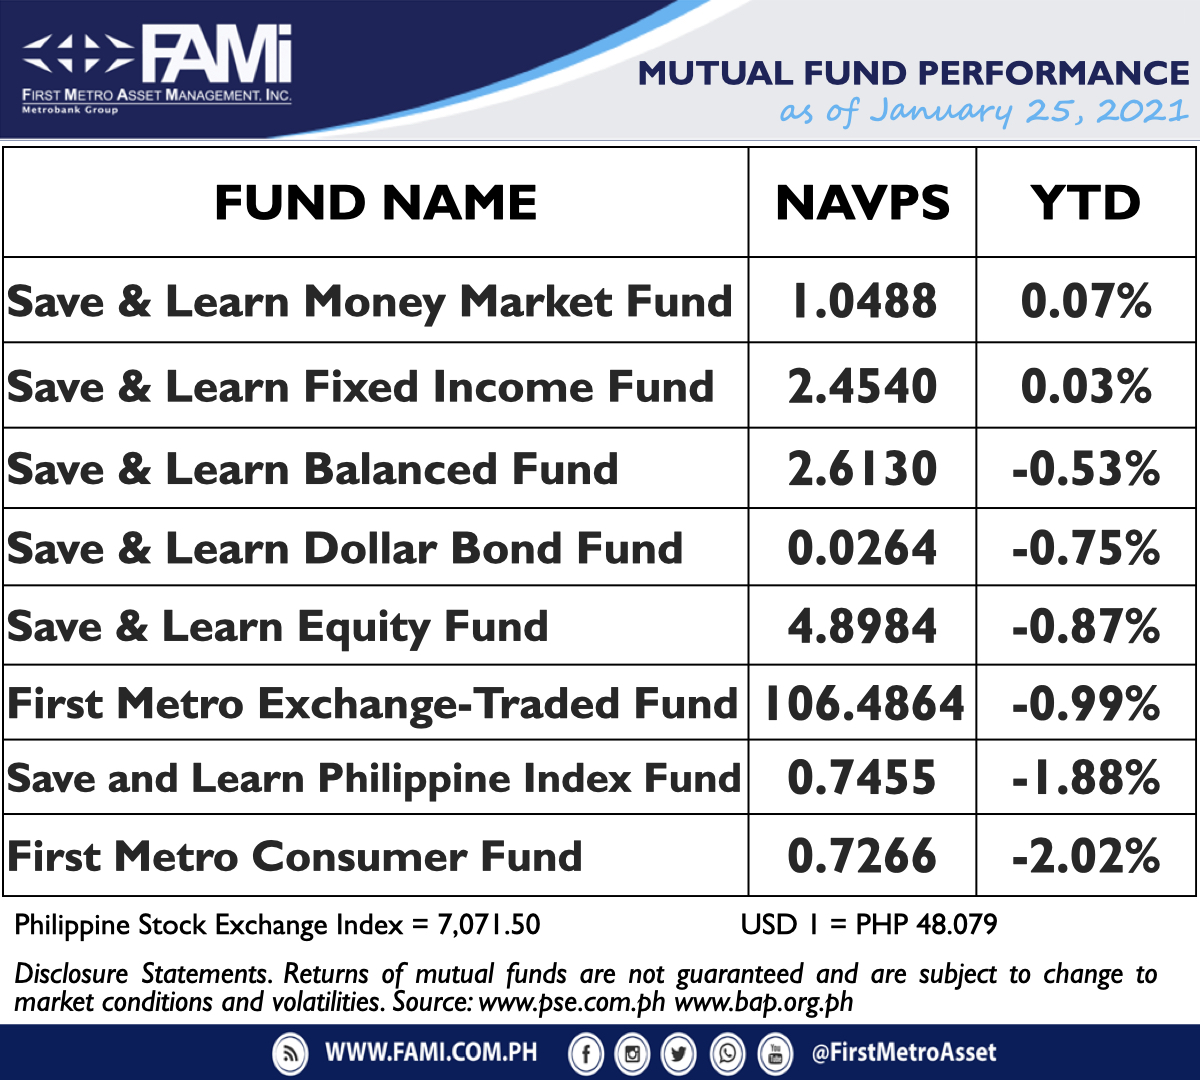 Here are our latest First Metro Asset Funds NAVPS as of January 25, 2021  #choosetomoveForward  #choosetoinvest  #choosewisely  #chooseFAMI https://t.co/xHm3q5RXBO